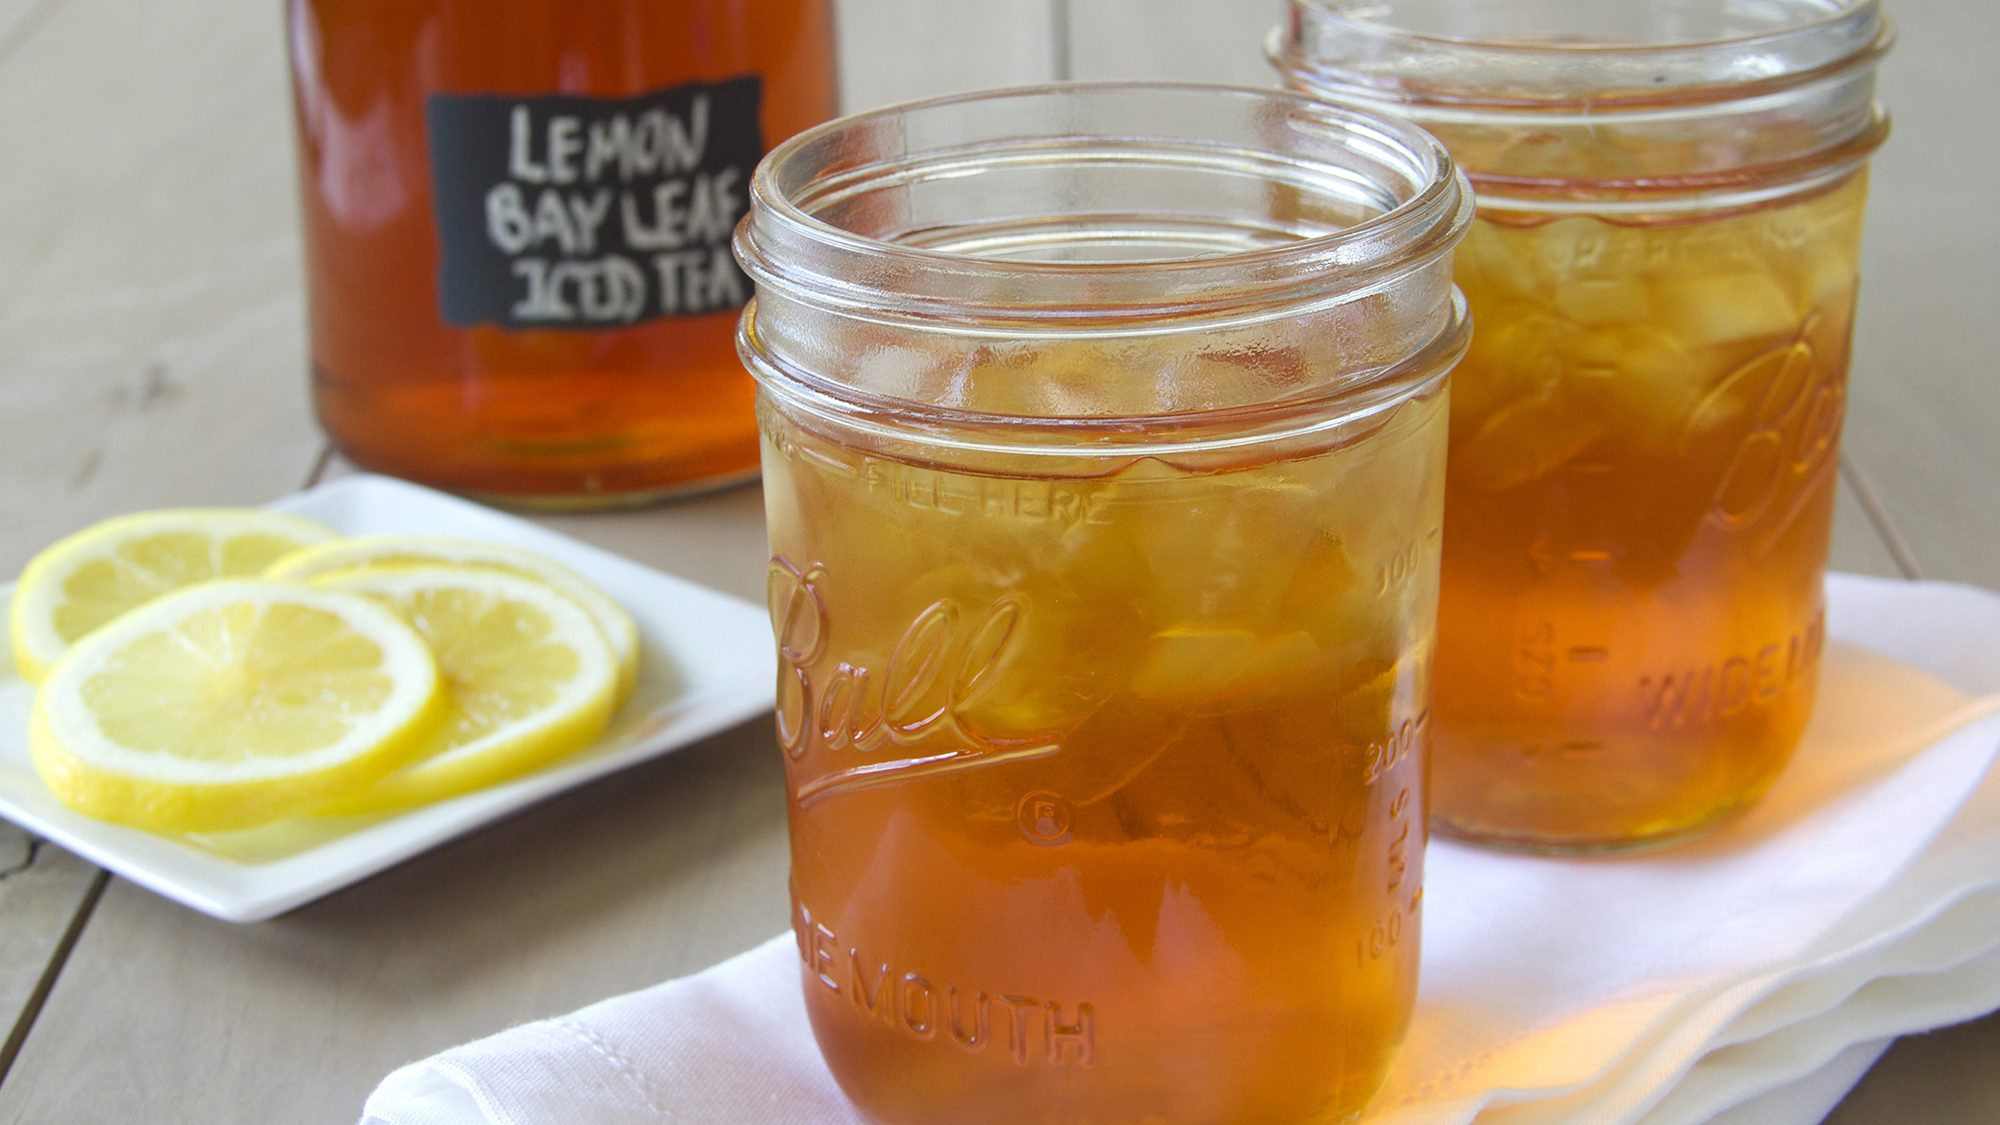 McCormick Gourmet Lemon Bay Leaf iced Tea